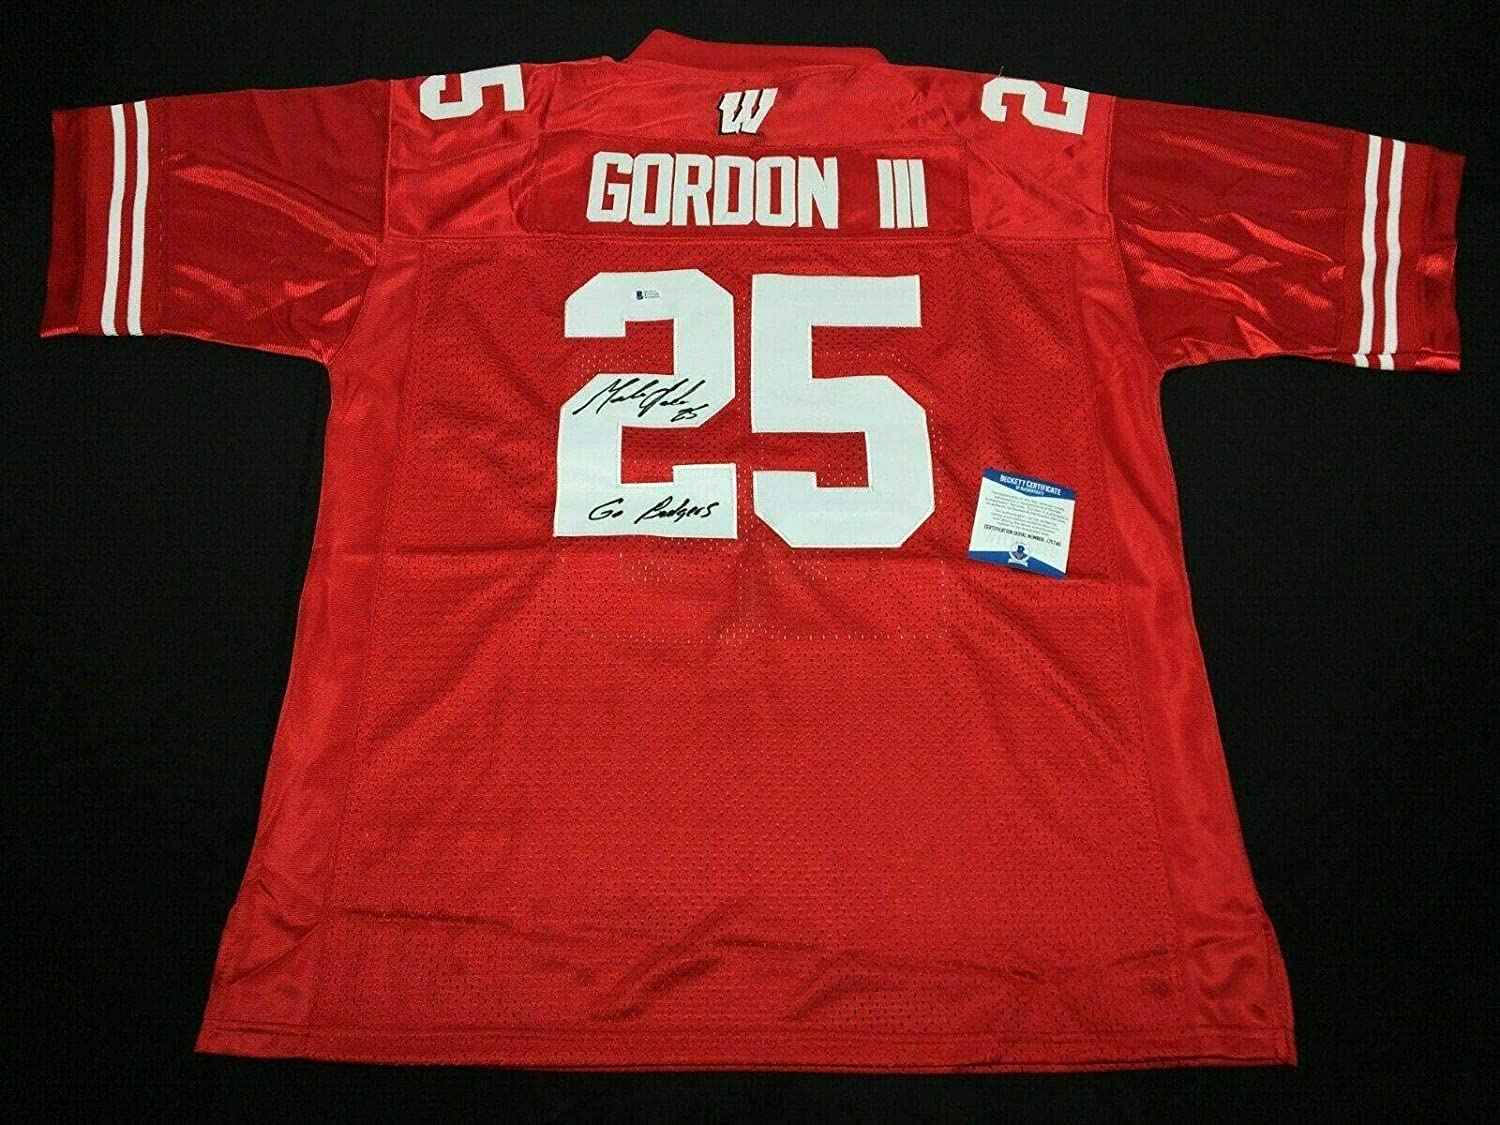 Melvin Gordon Signed Wisconsin Badgers Football Jersey